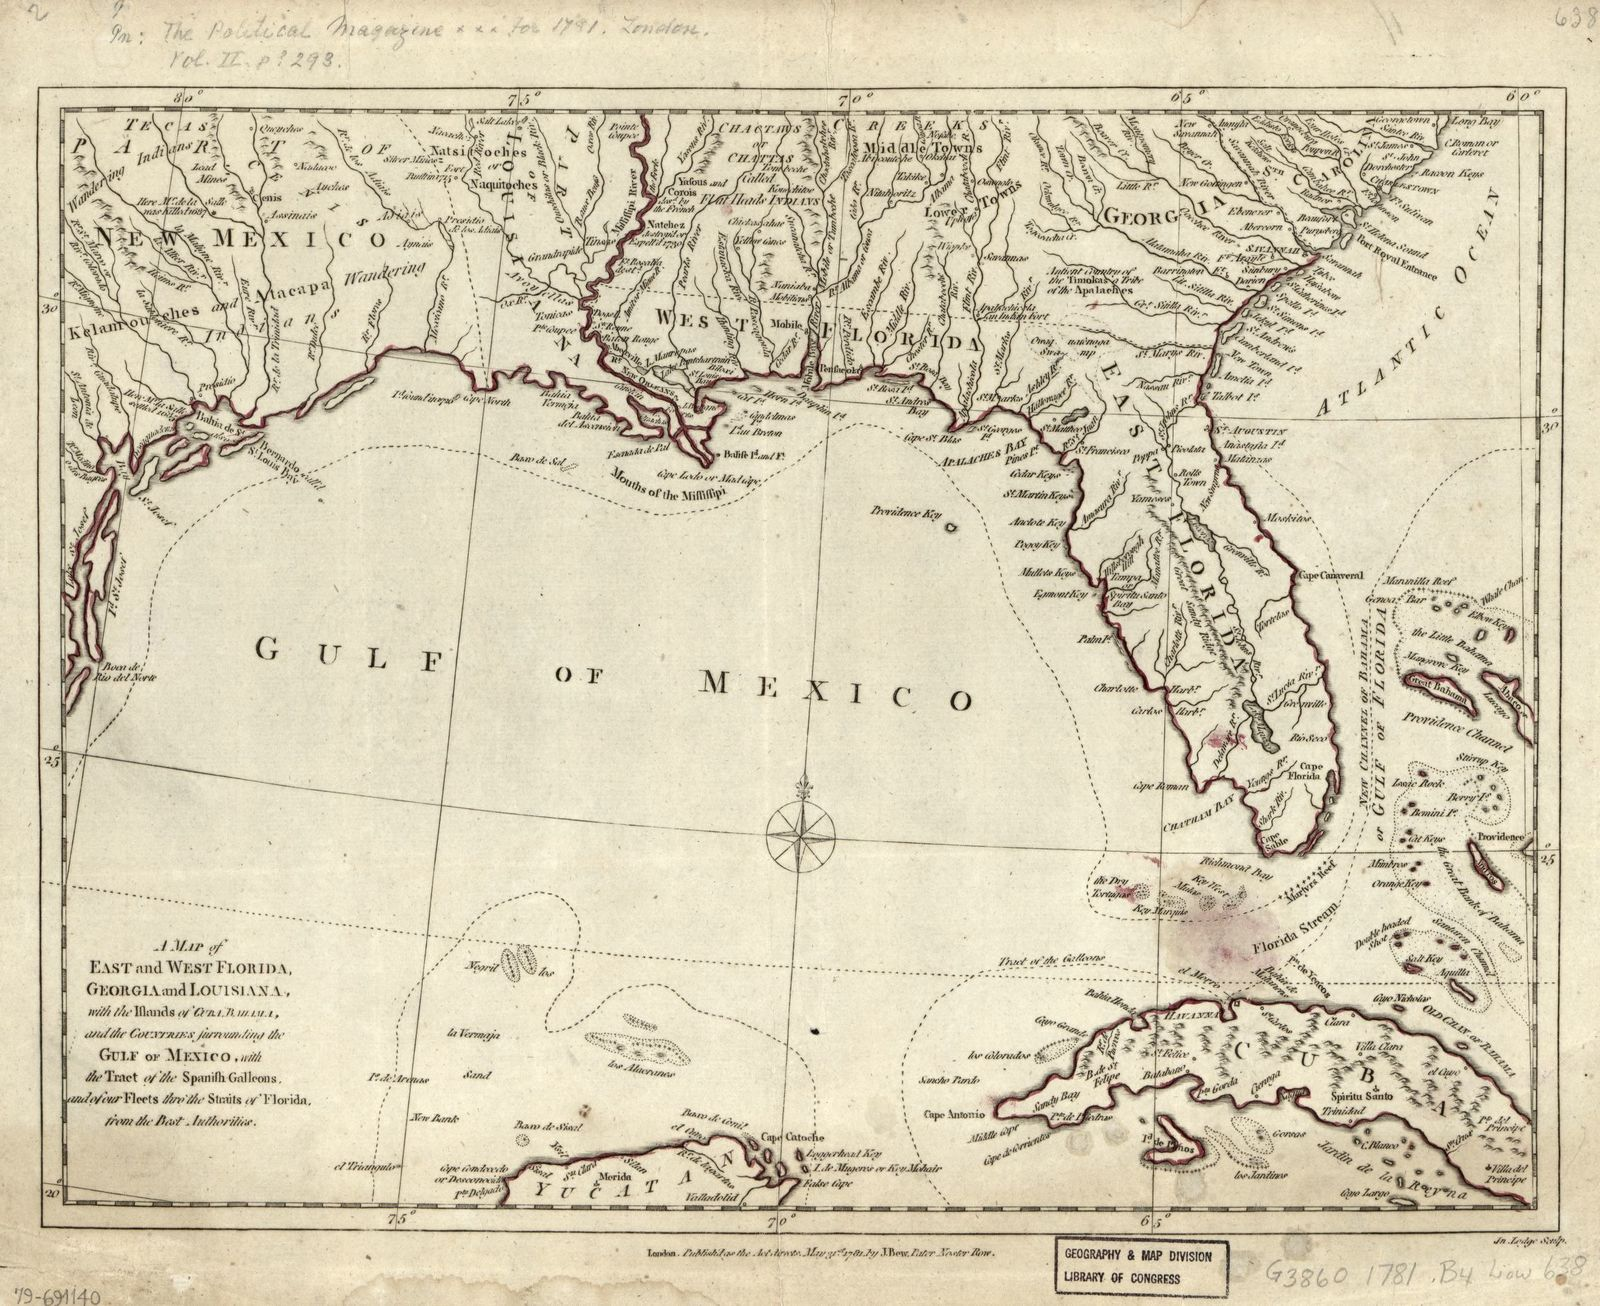 Florida And Georgia Map.A Map Of East And West Florida Georgia And Louisiana With The